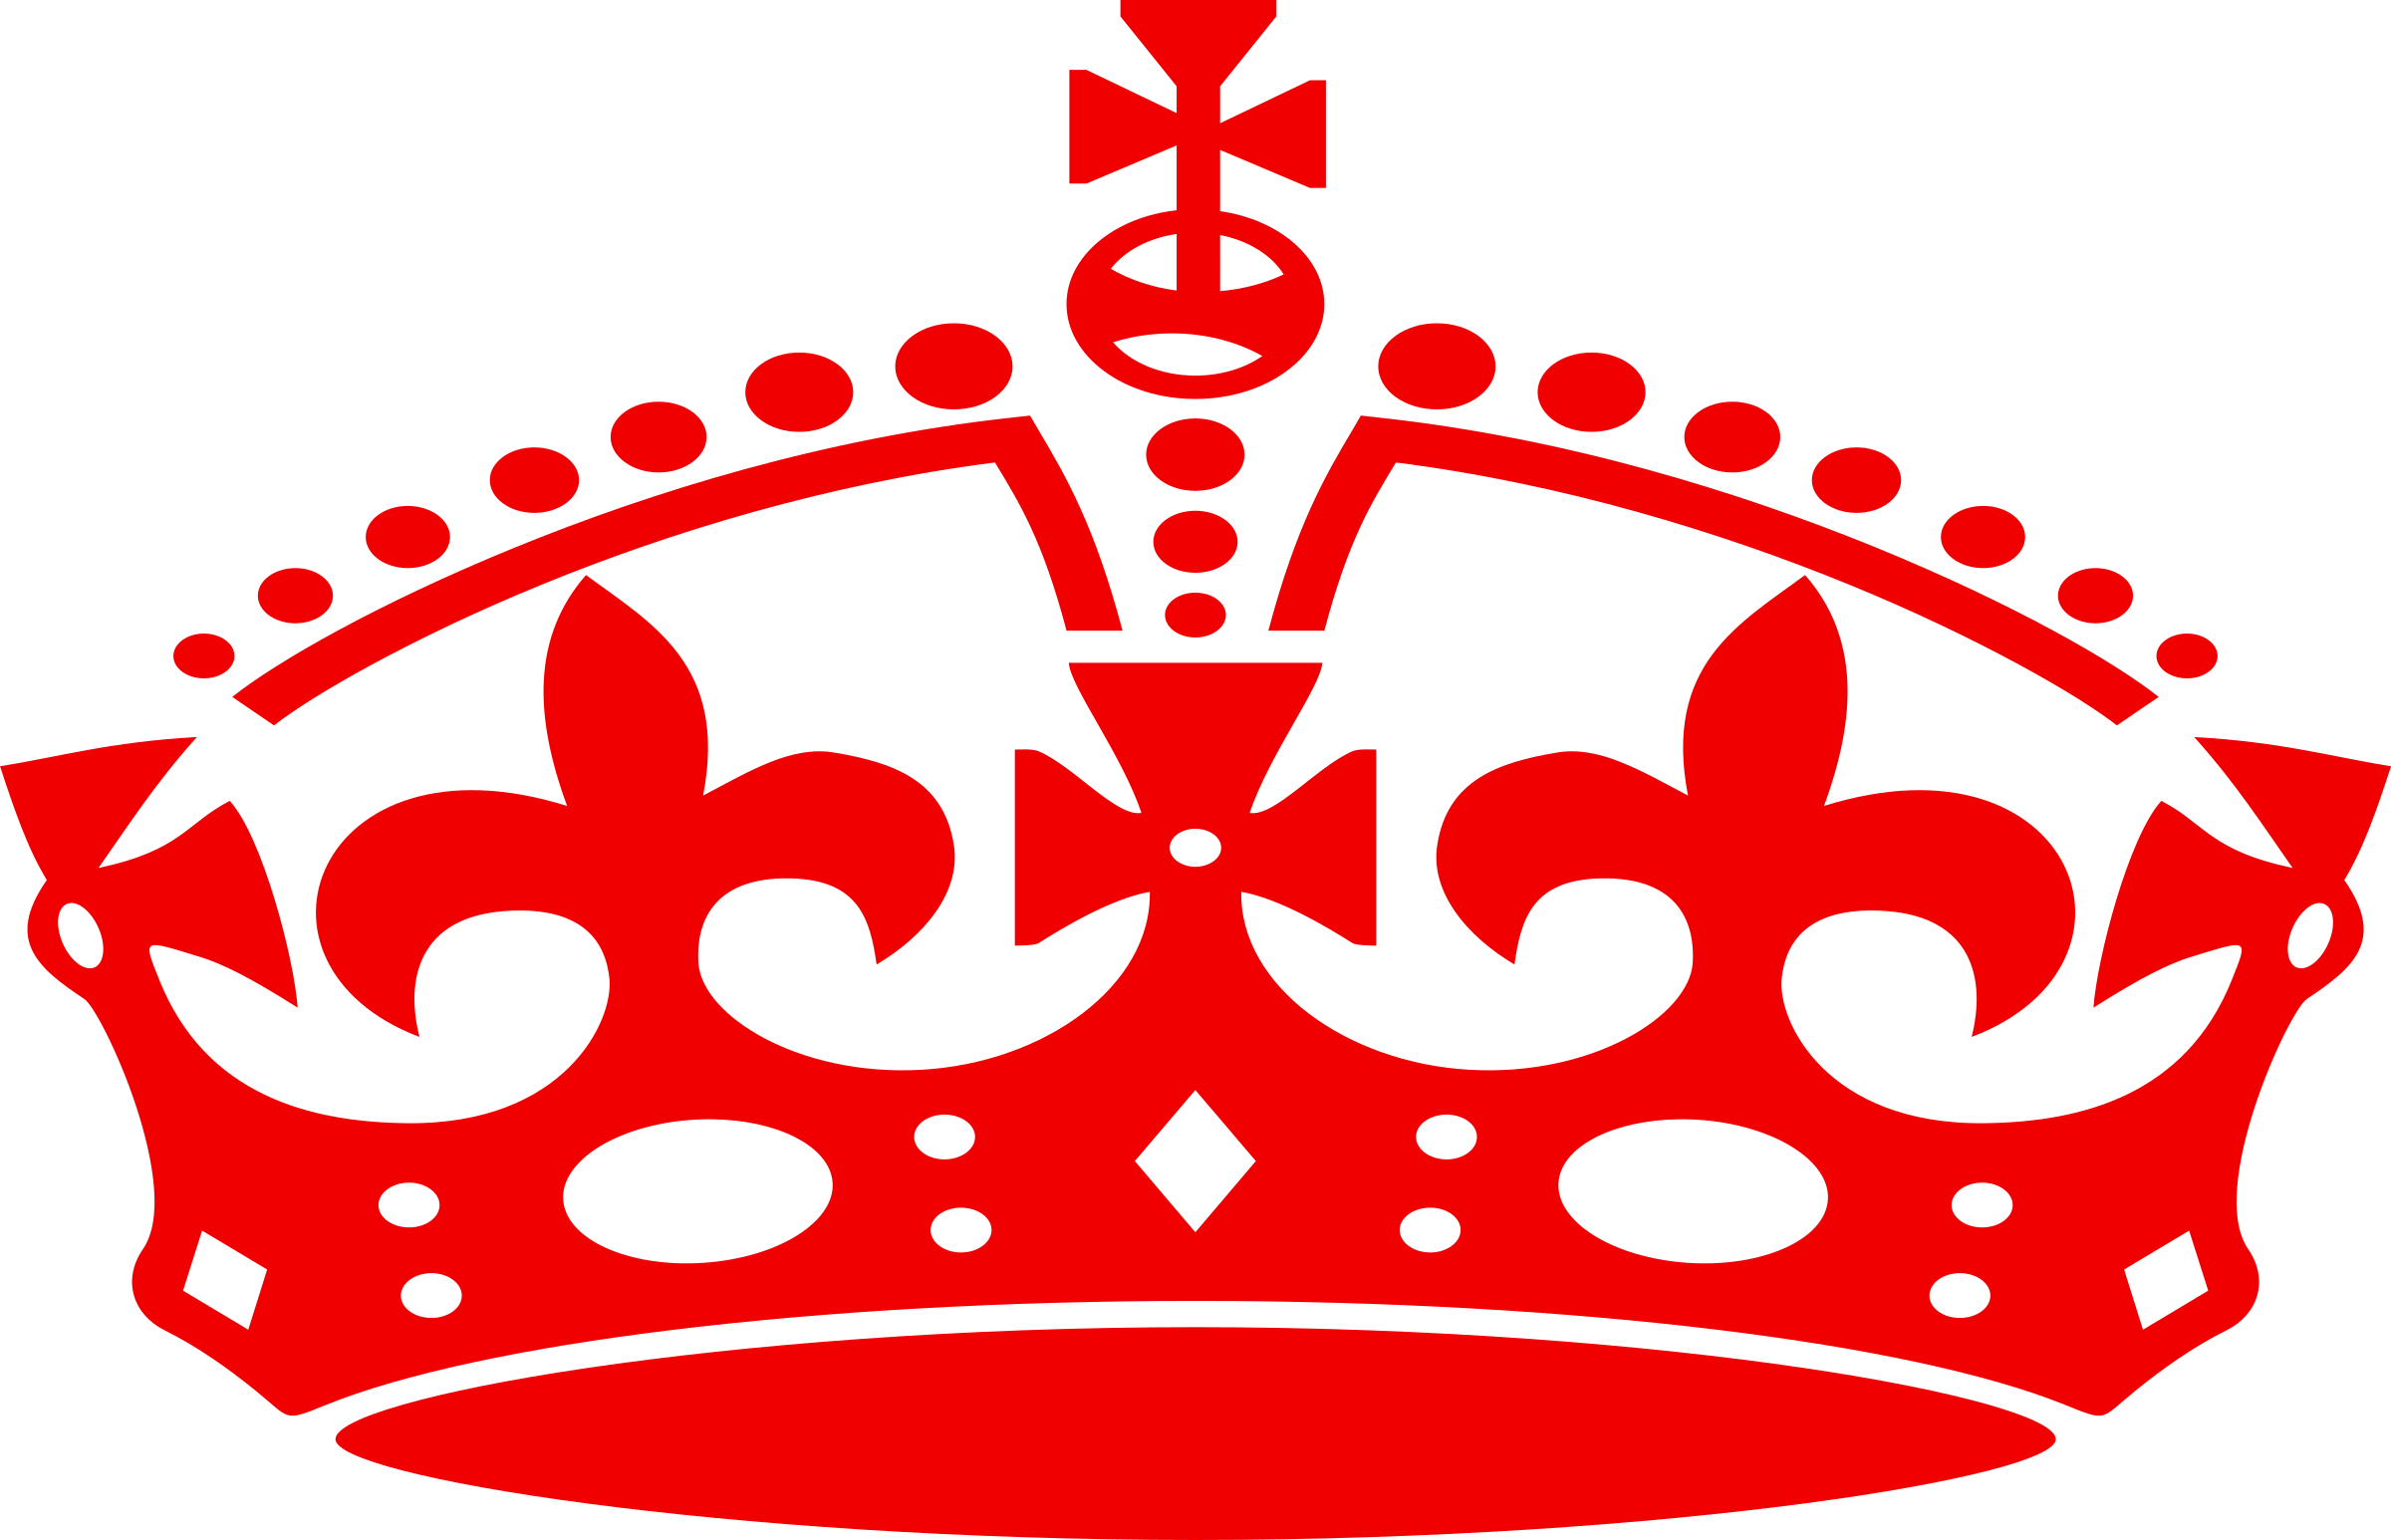 Jubilee red big image. Crown clipart king's